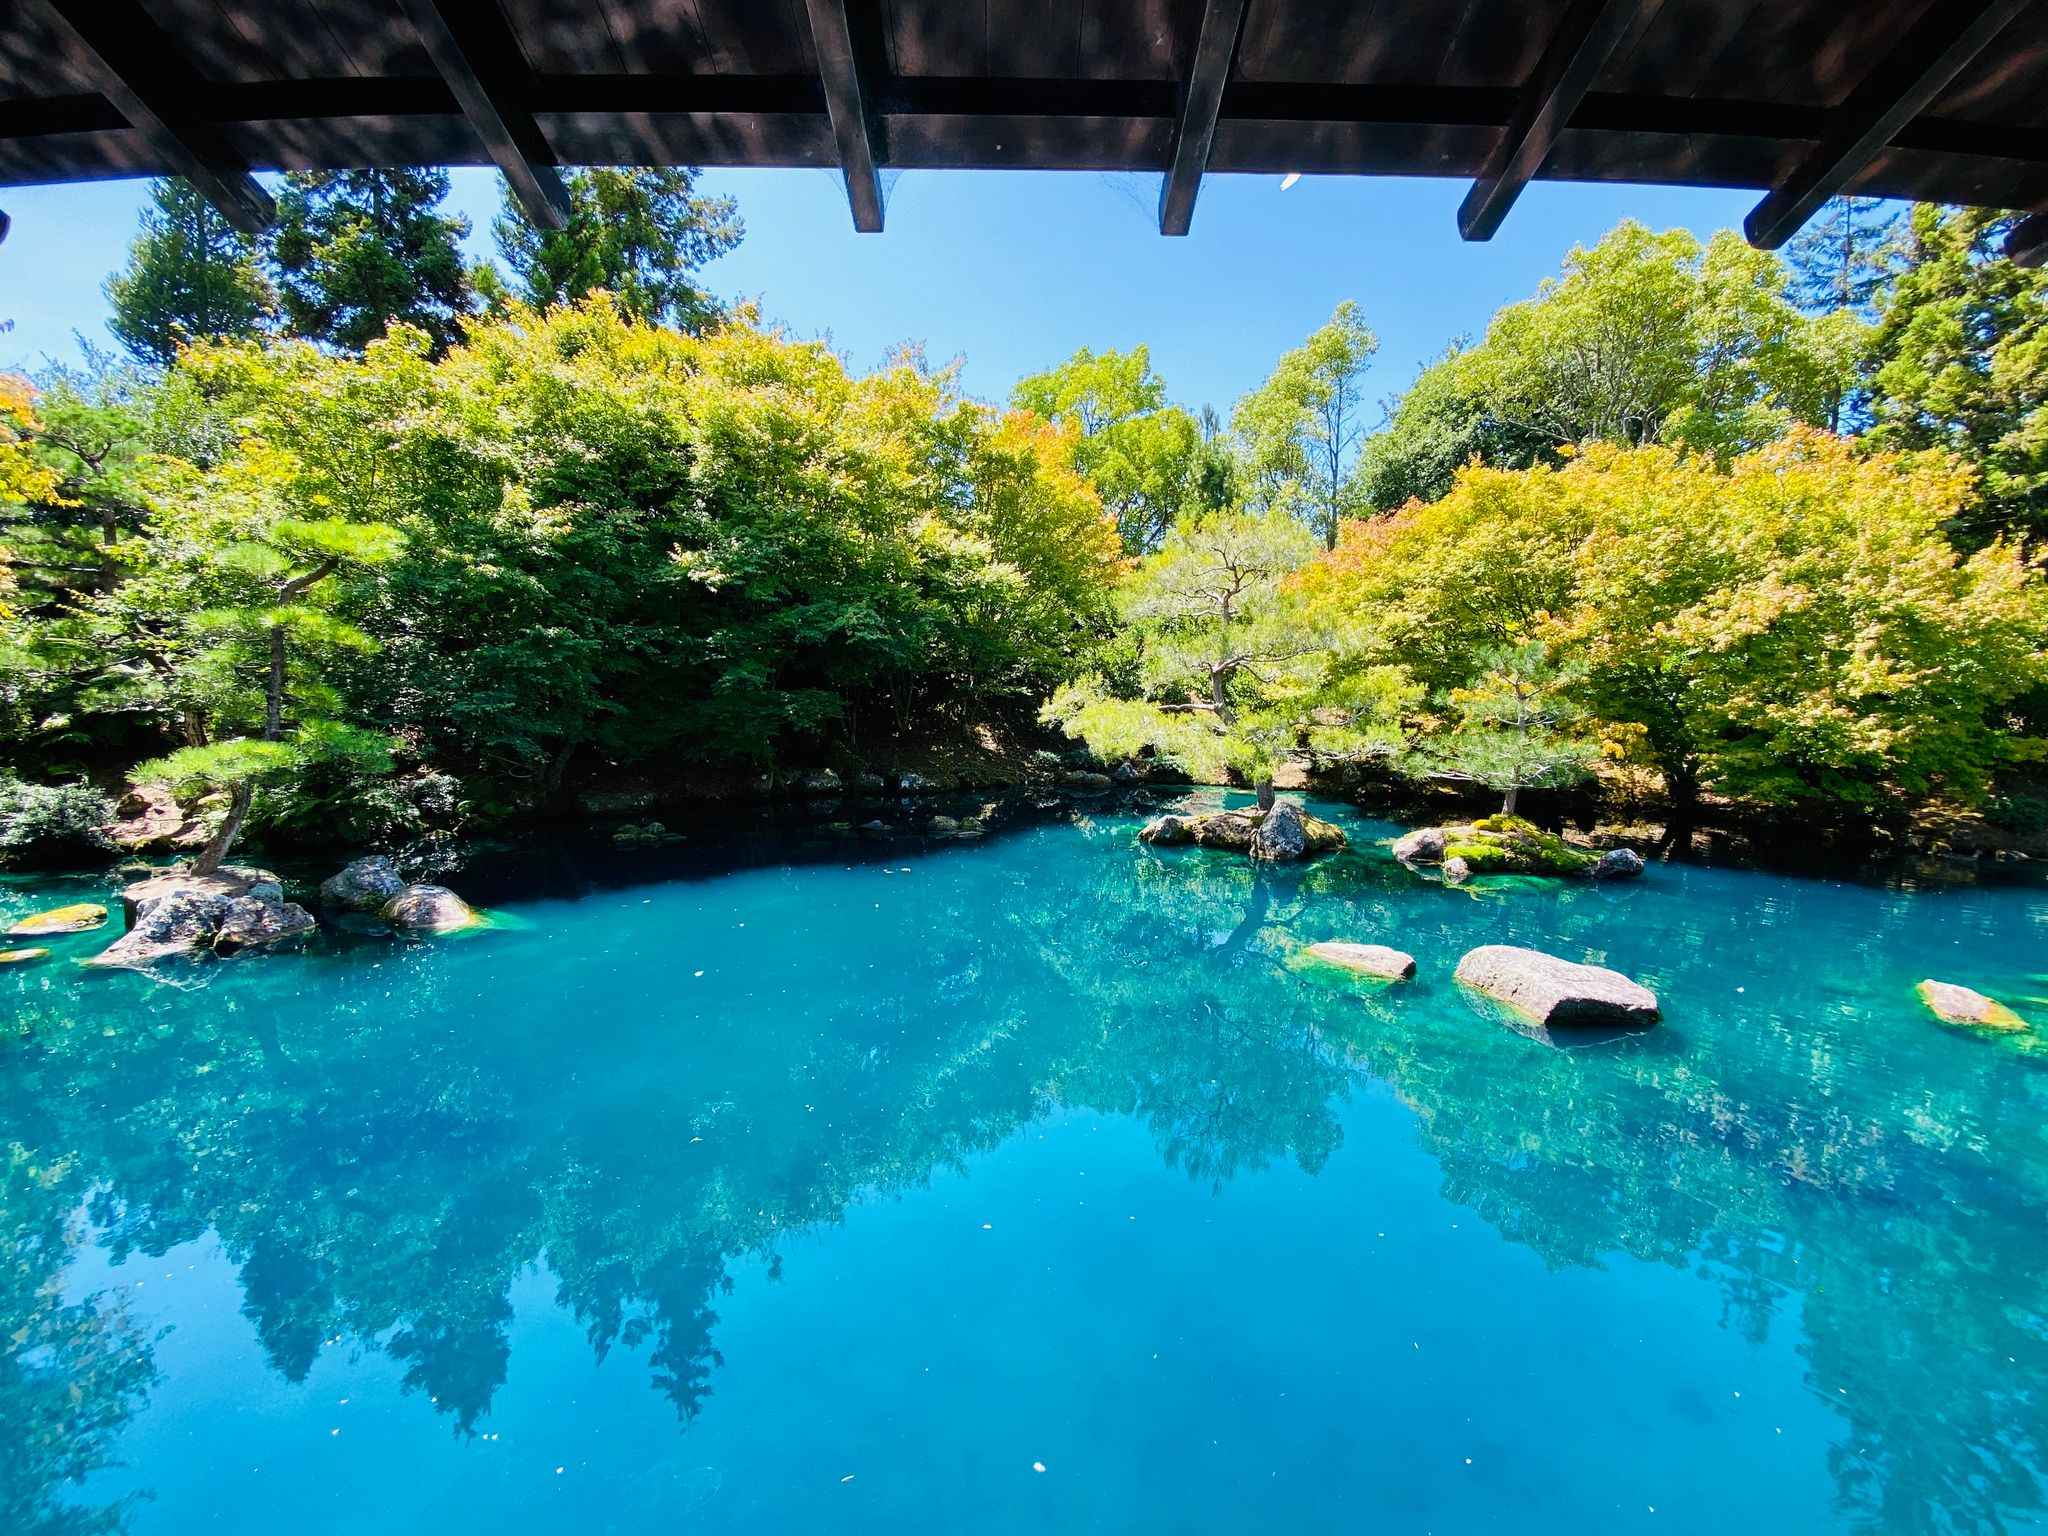 A photo of an unnaturally turquoise pond and Japanese trees.